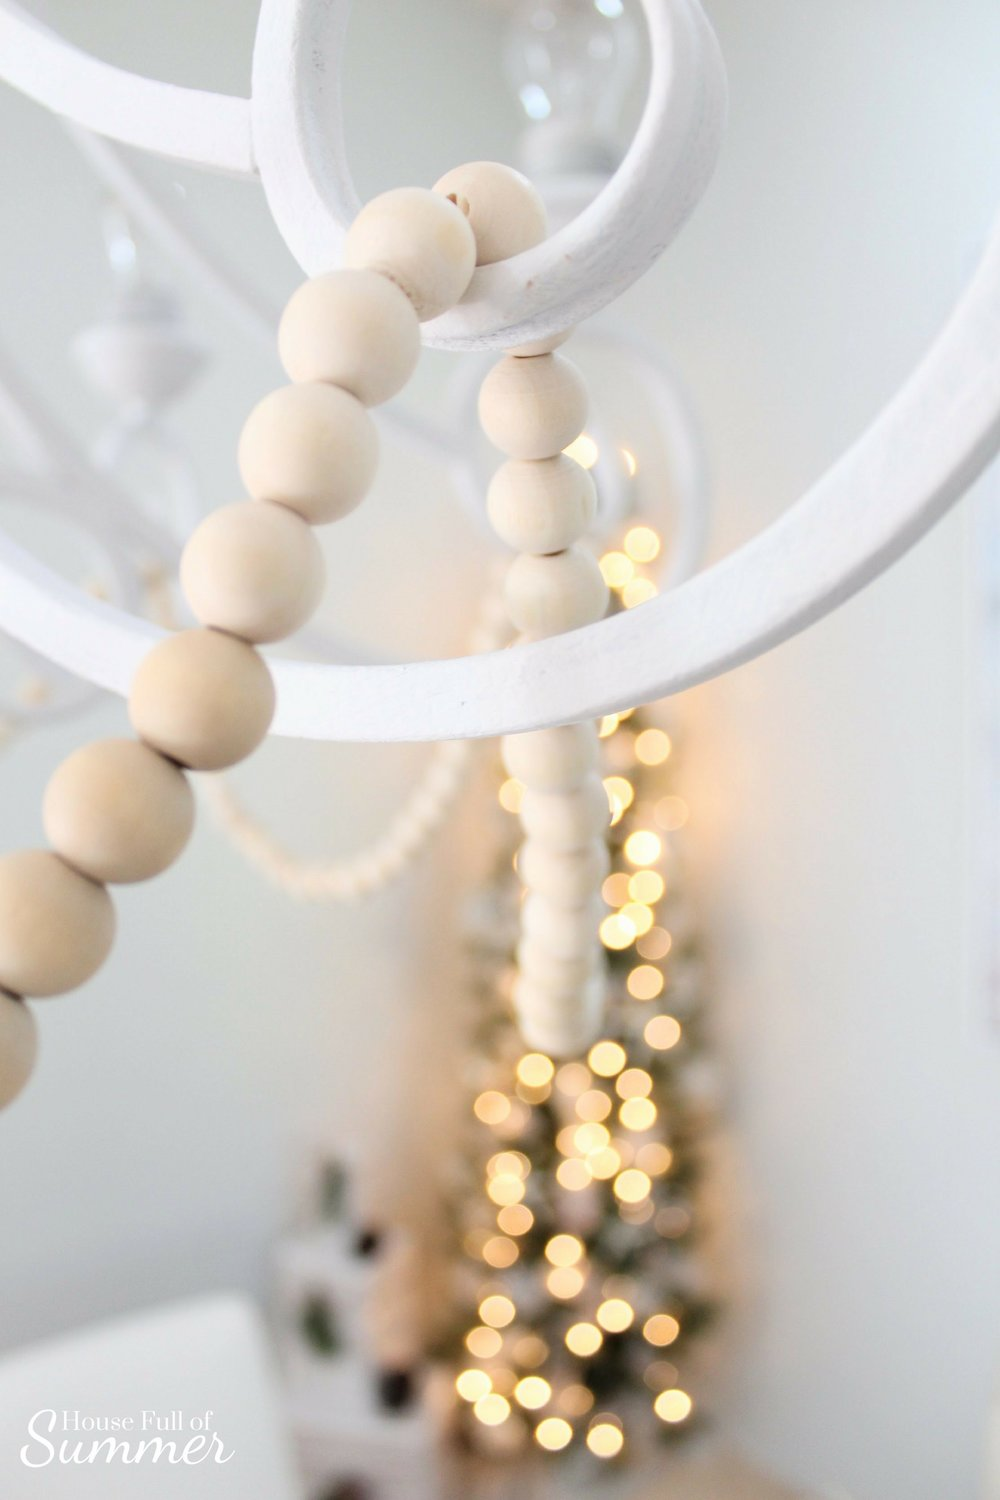 Christmas Home Tour | House Full of Summer blog hop - Cheerful Christmas Home Tour coastal christmas neutral christmas decor, holiday home tour, florida christmas, dining room, chandelier, painted, wooden beaded chandelier, twinkling lights, fairy lights,